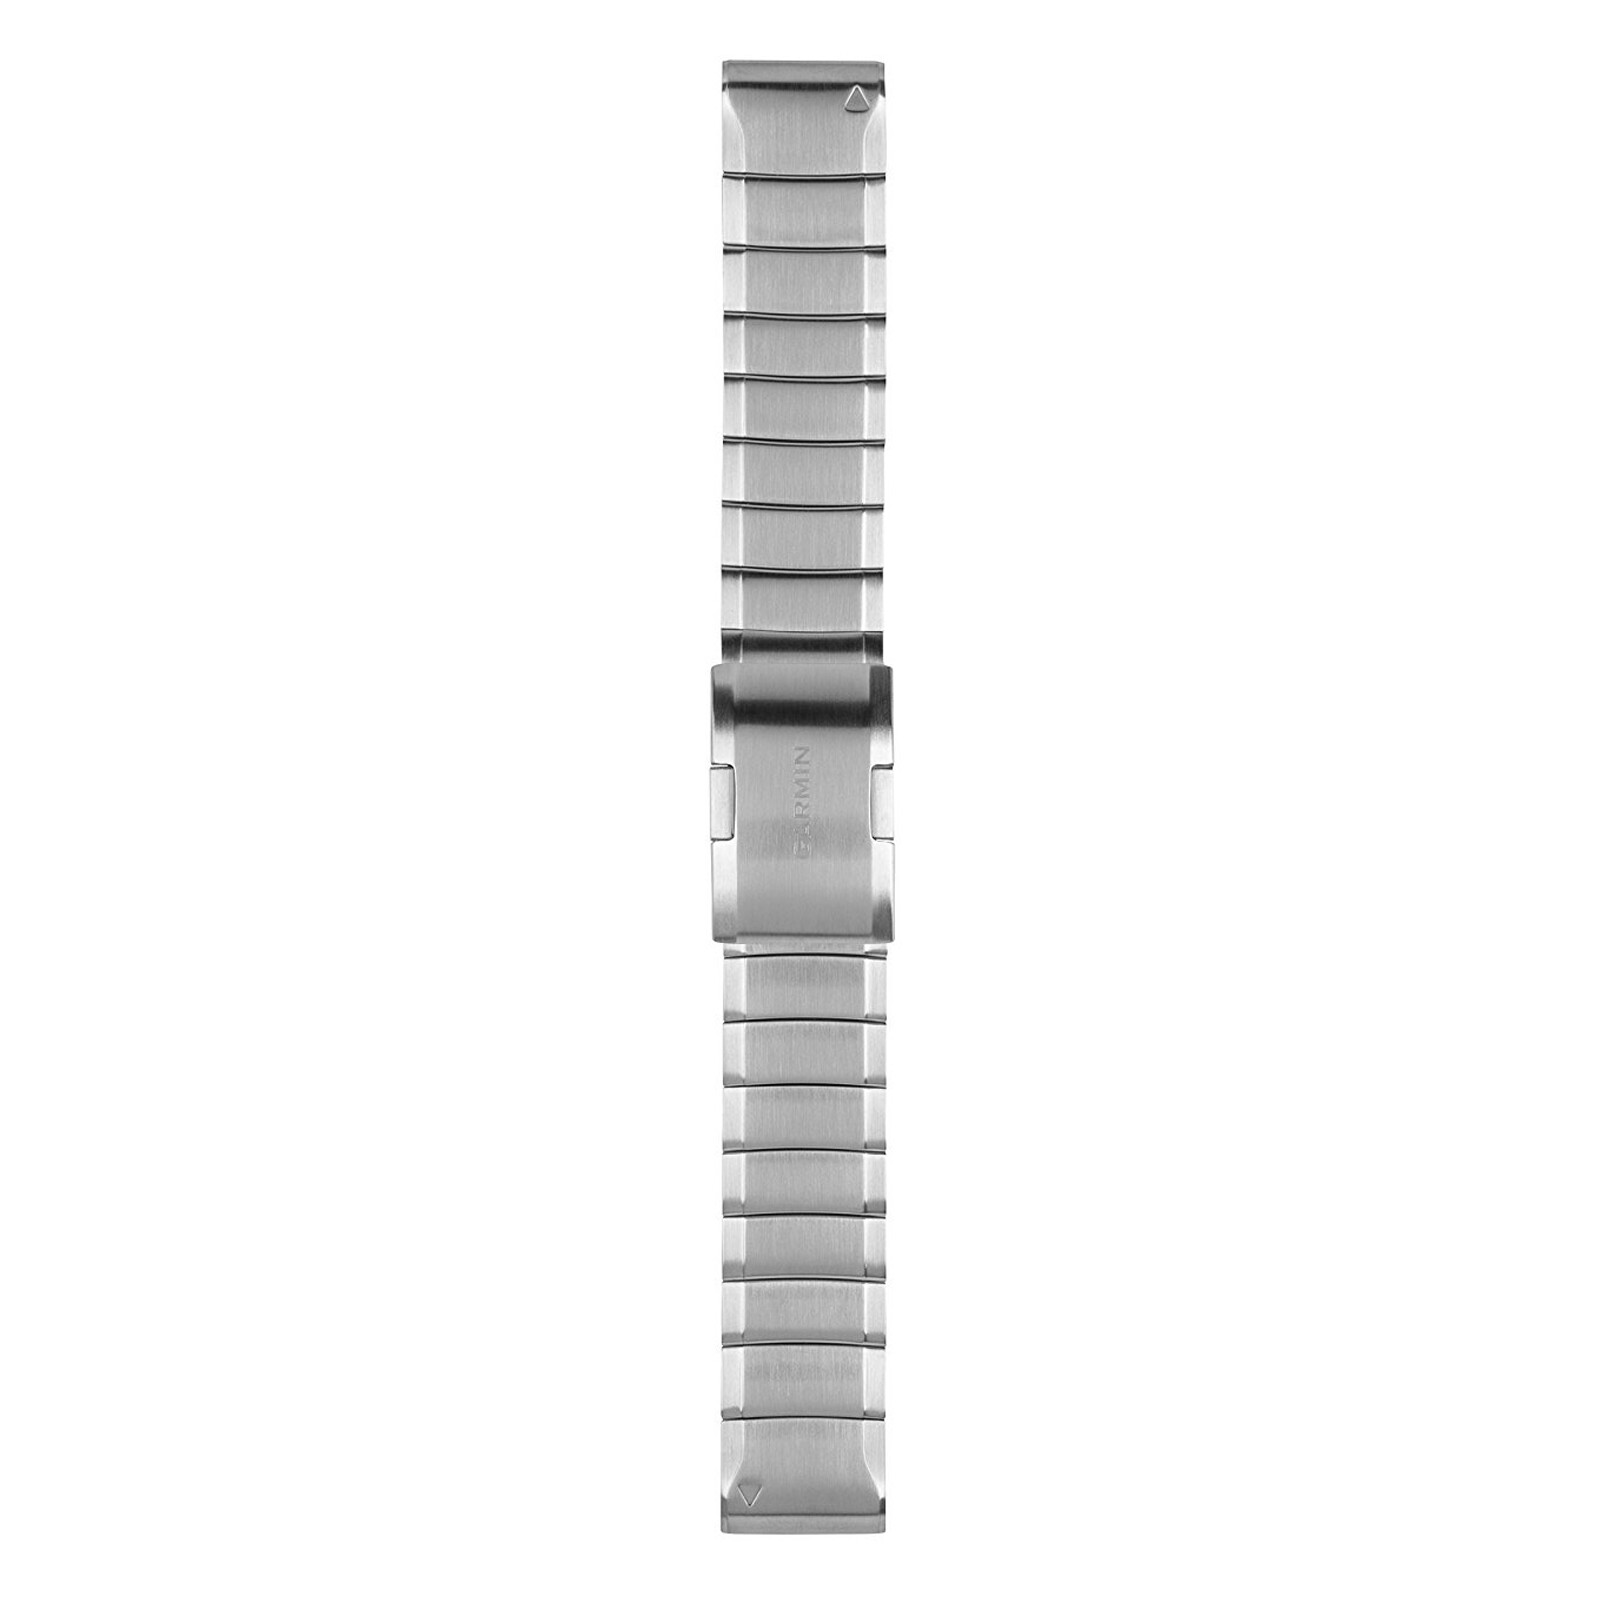 Garmin Quick Fit 22 Band Stainless Steel